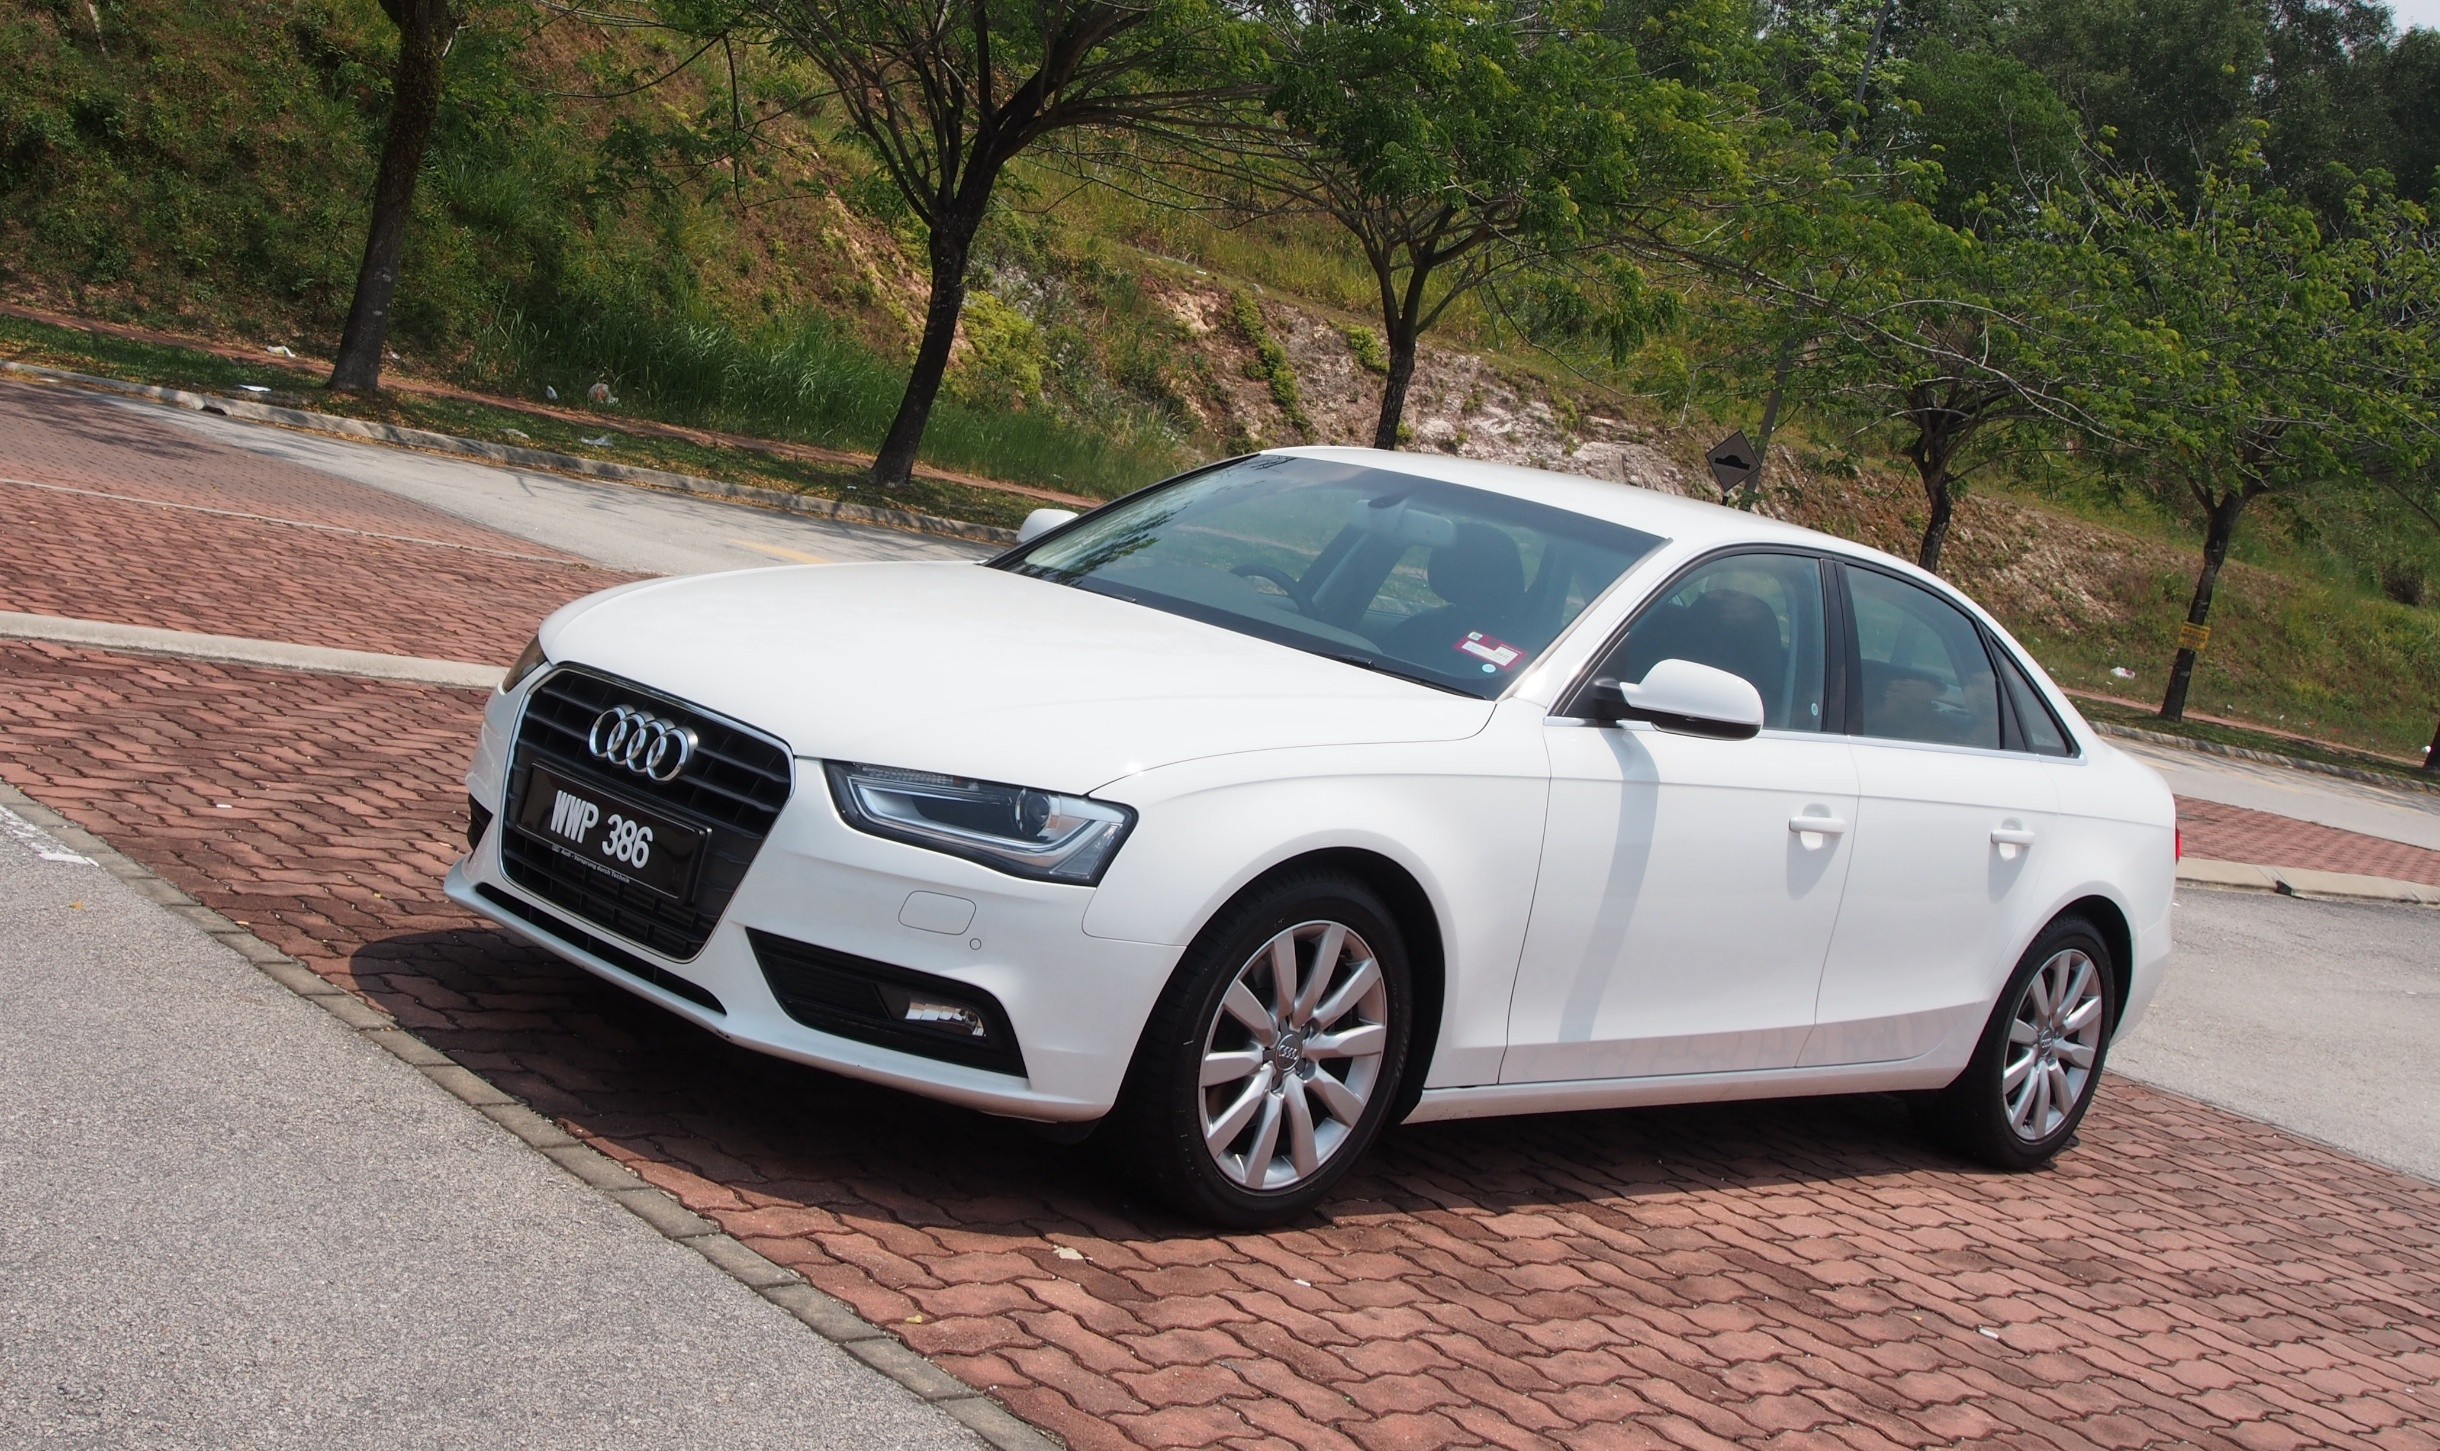 Audi A4 1 8 Tfsi Review The B8 Gets More Efficient Image